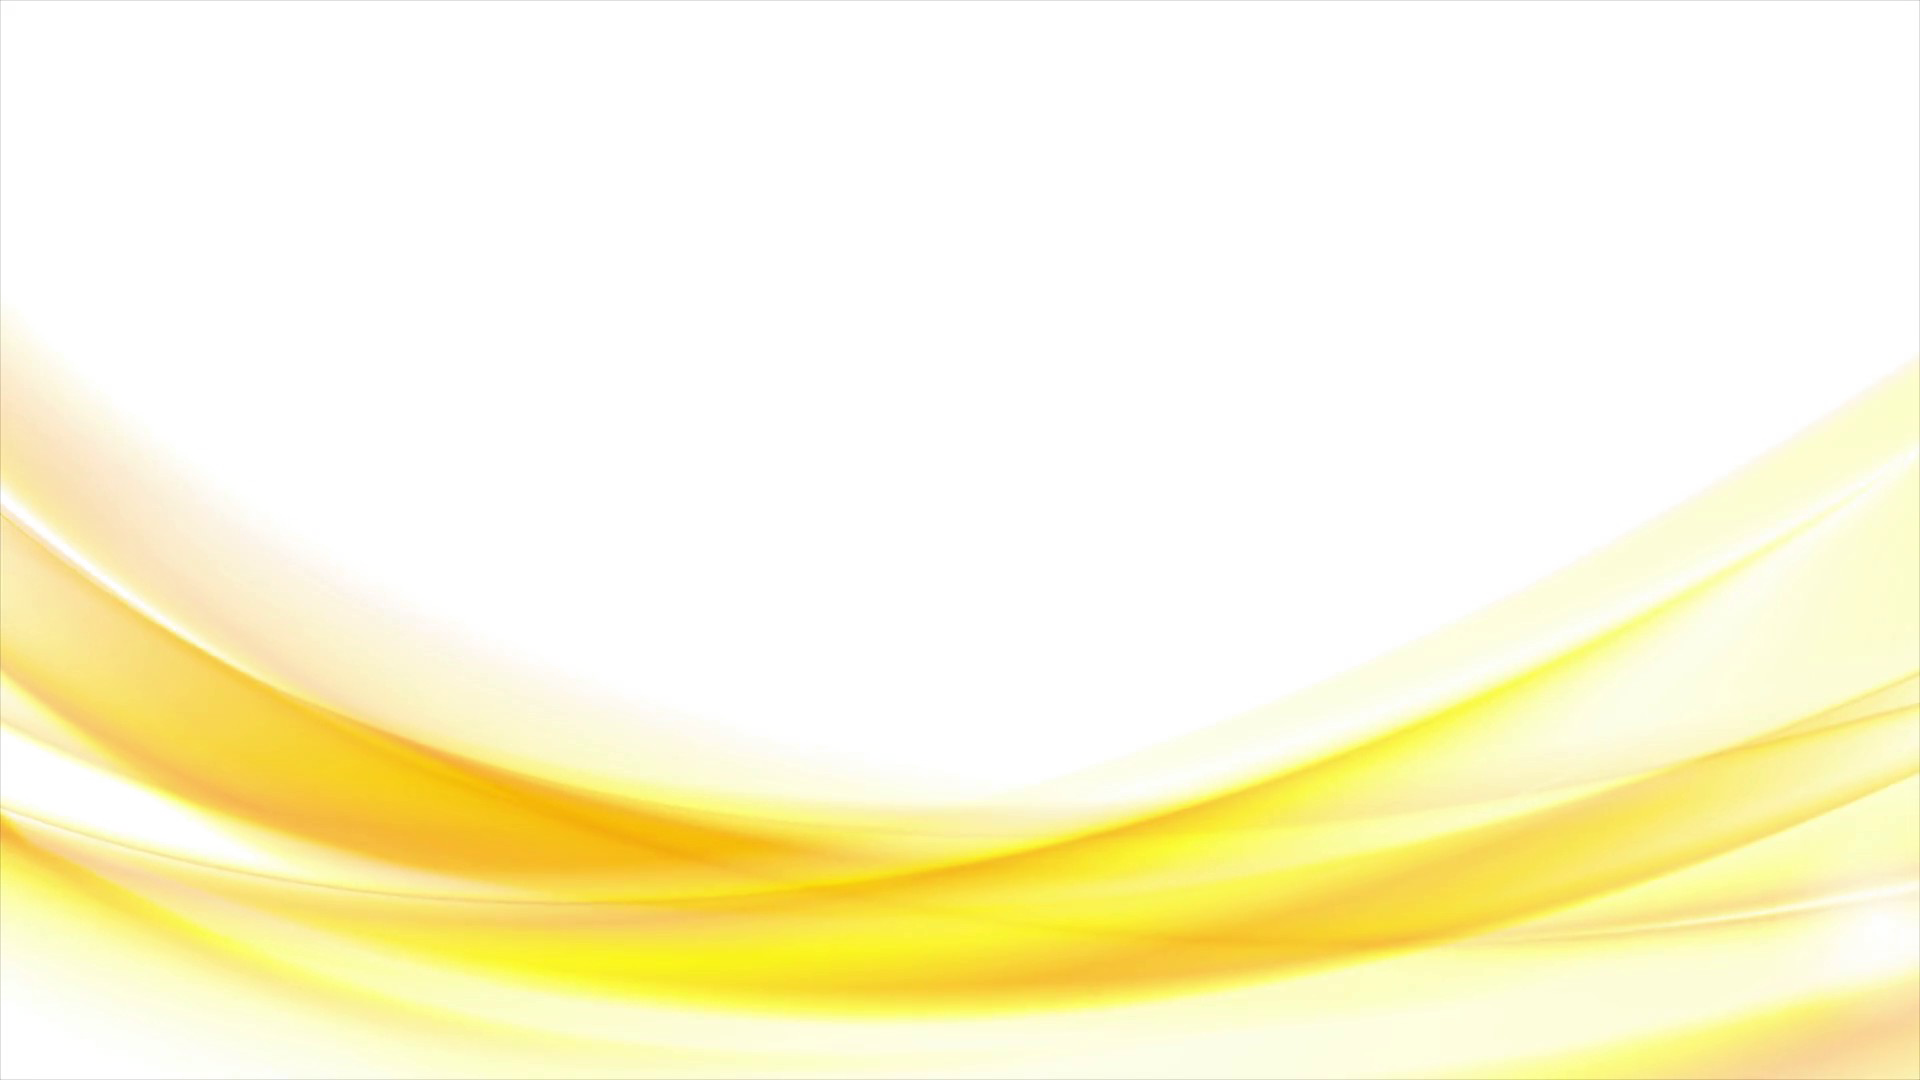 Abstract Wave HD Free Transparent Image HD PNG Image